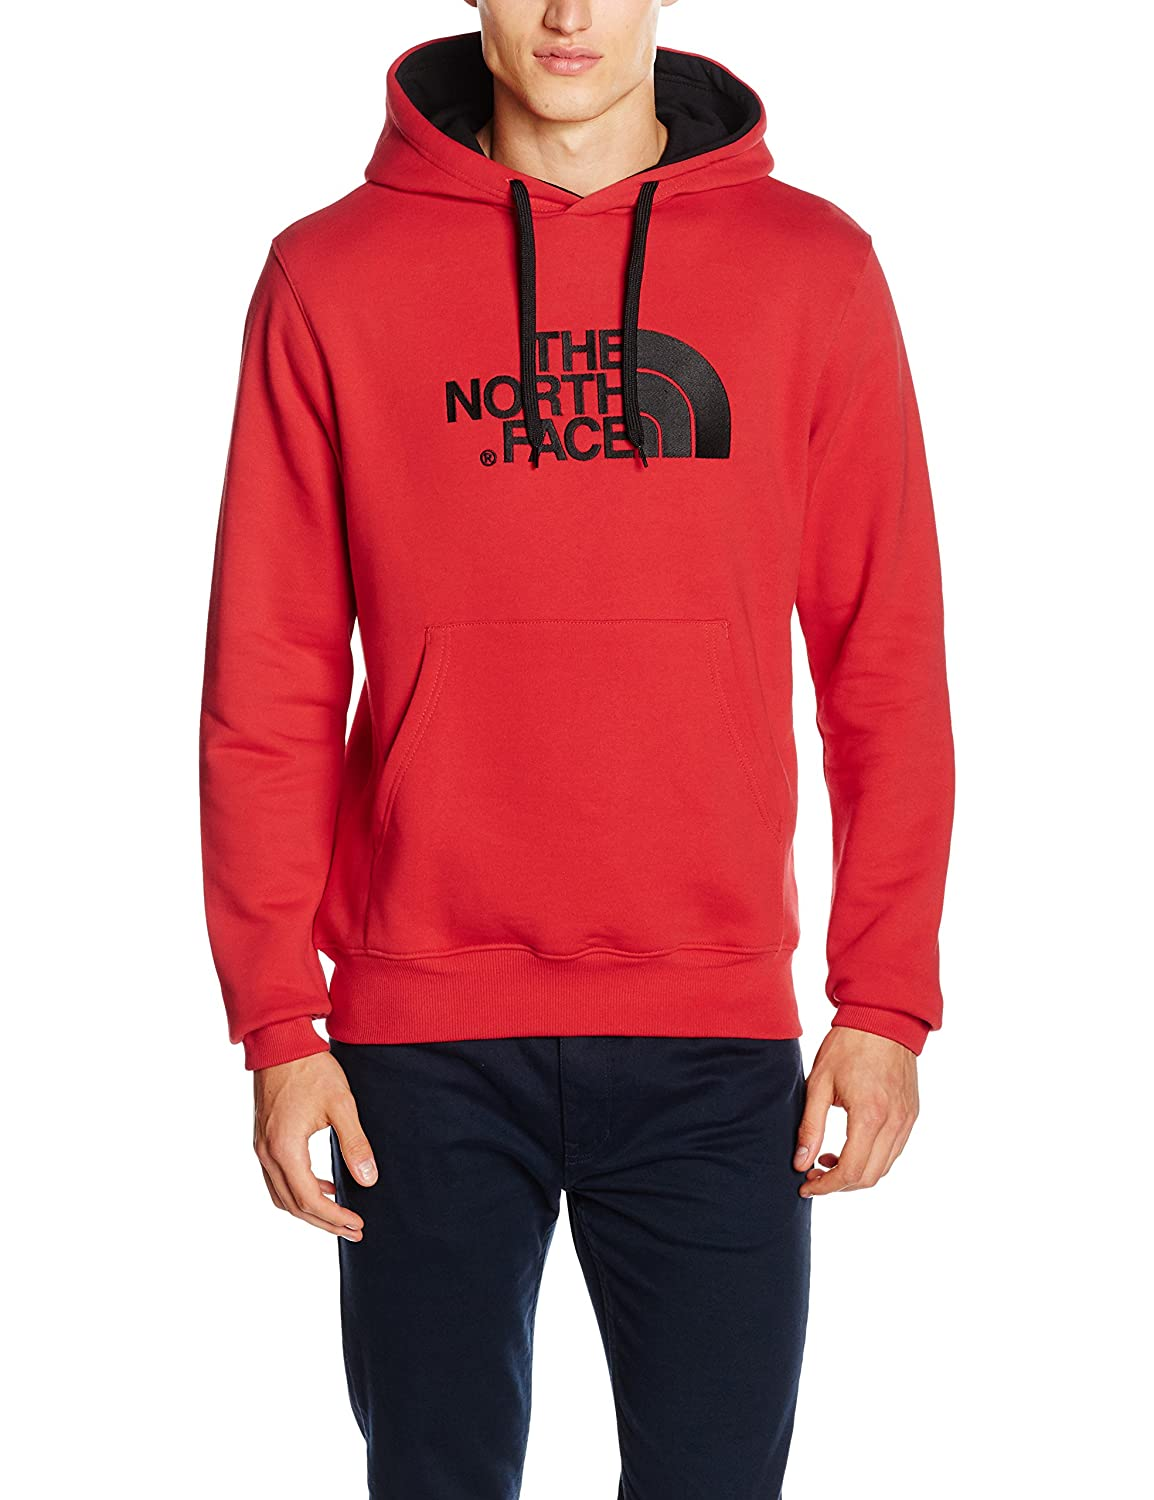 The North Face Drew Peak - Sudadera para hombre